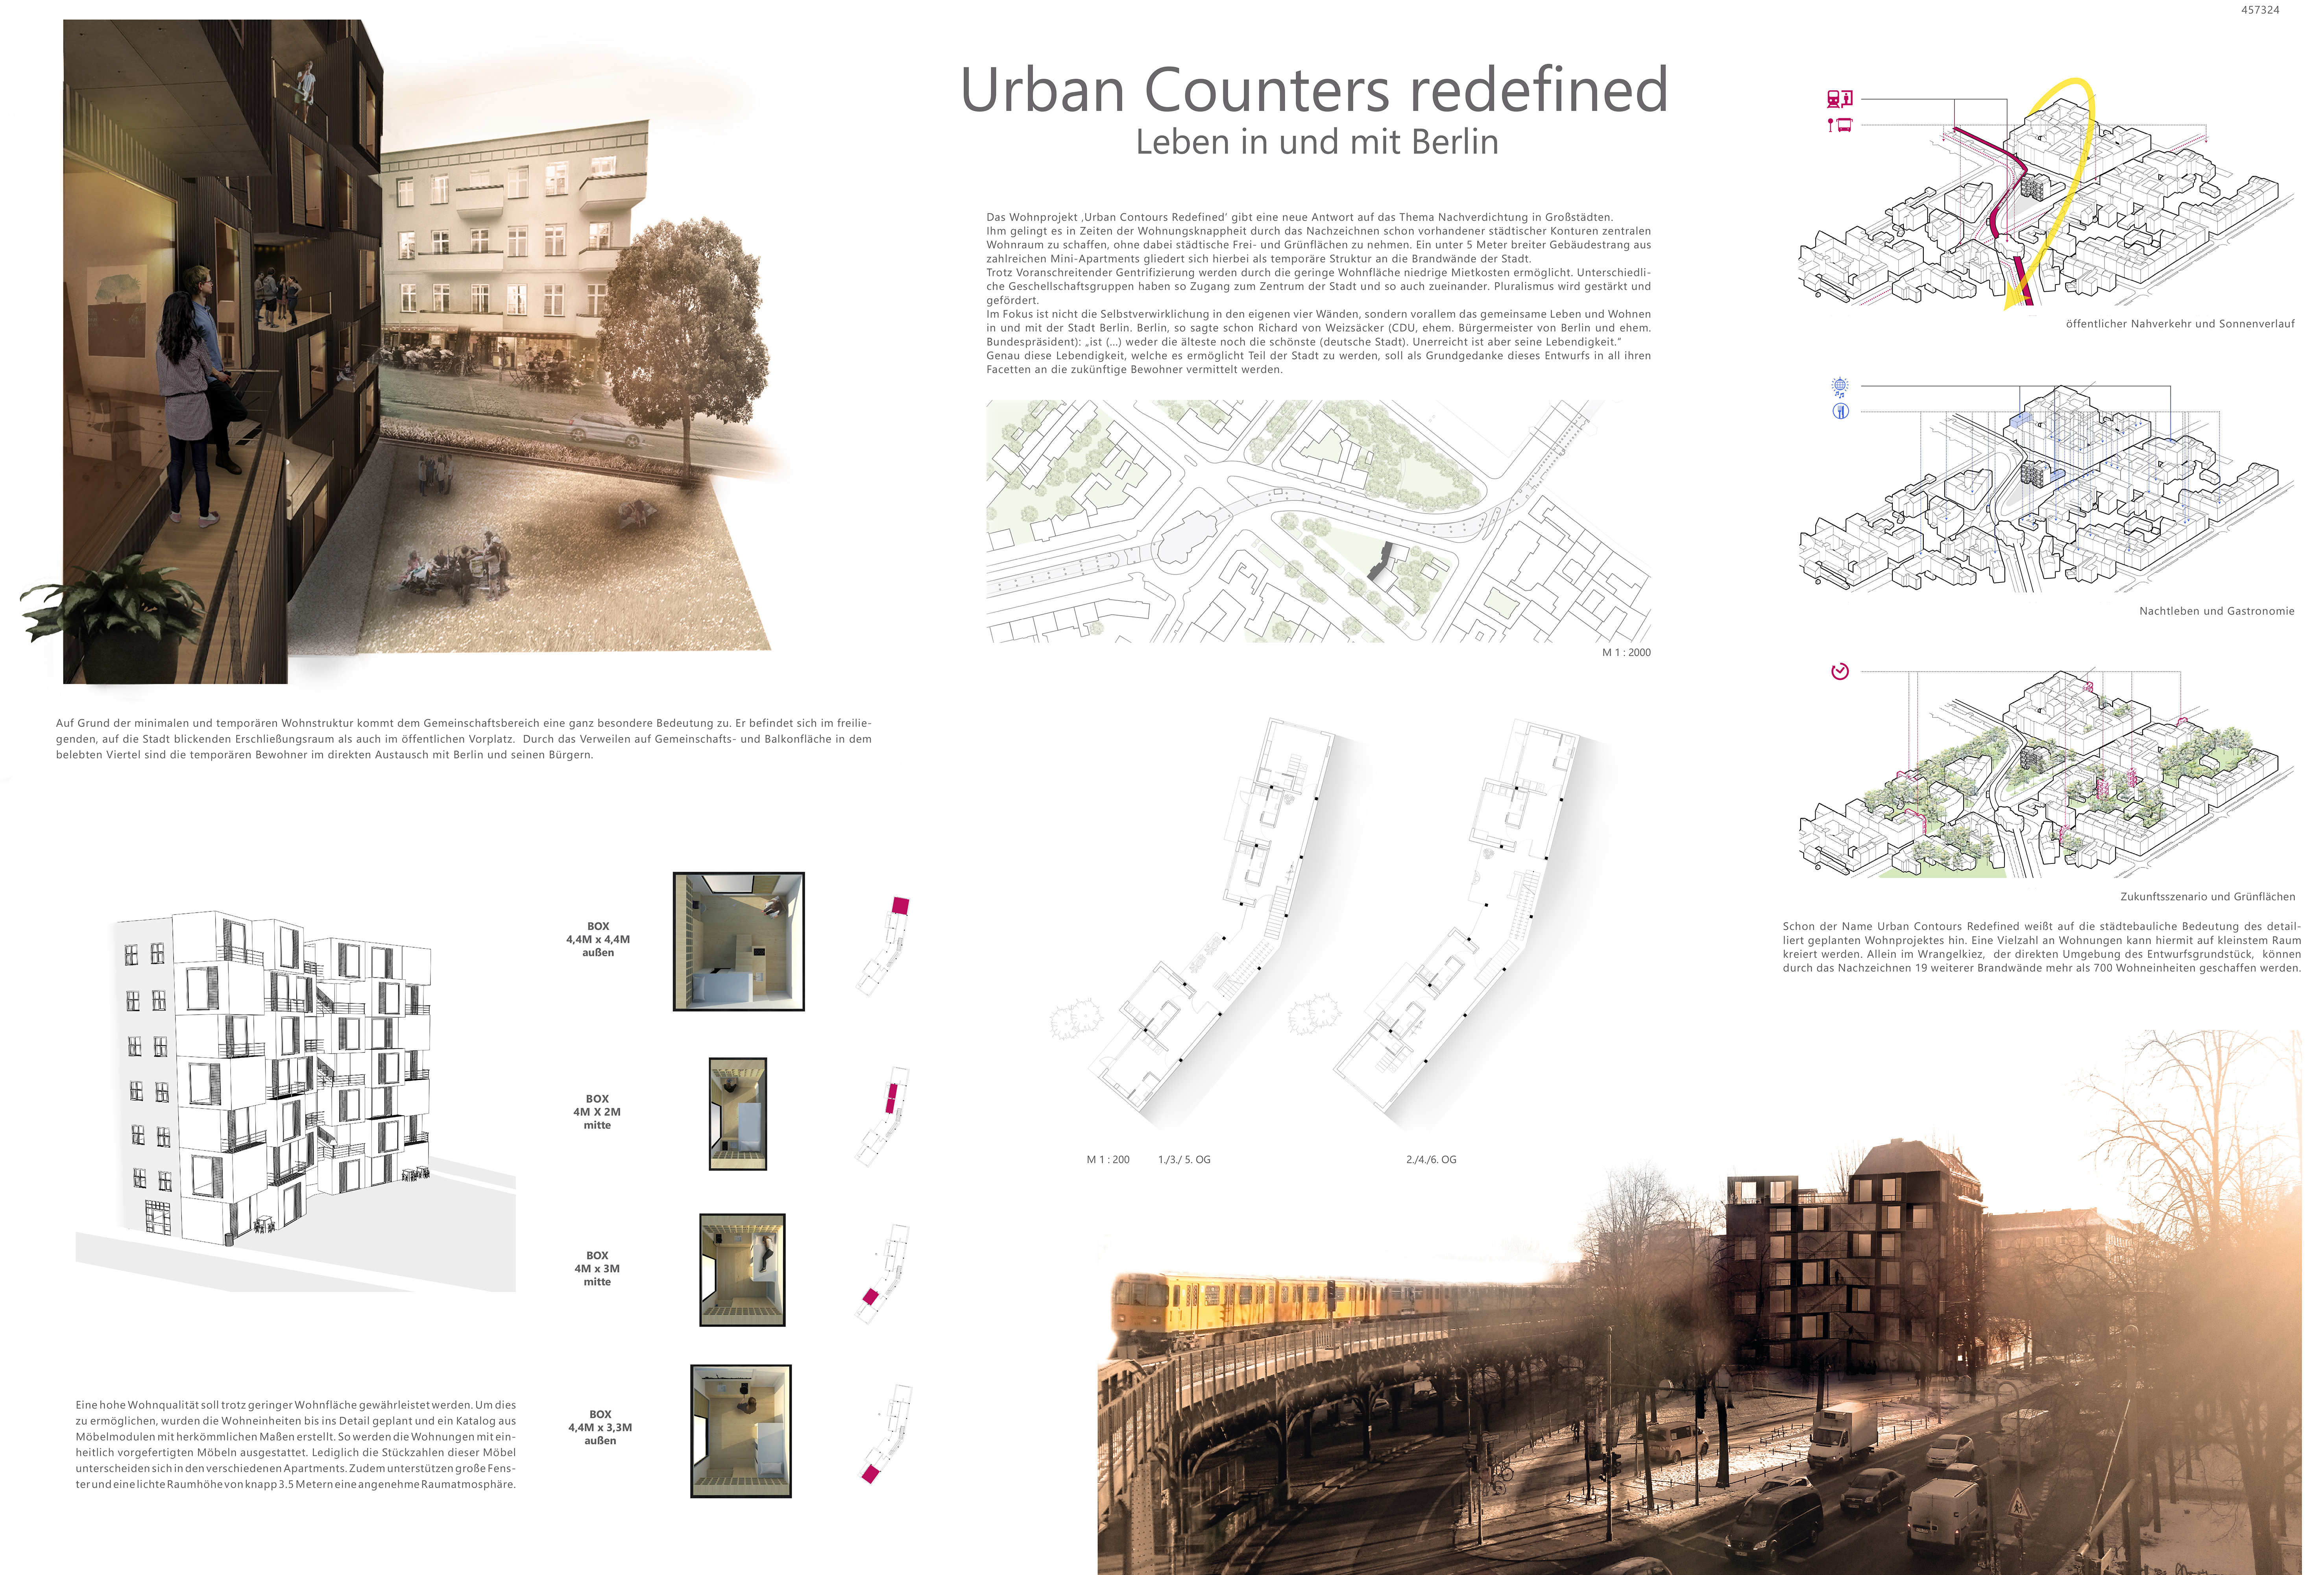 Free Architecture Dissertation Samples and Examples List - StudentShare